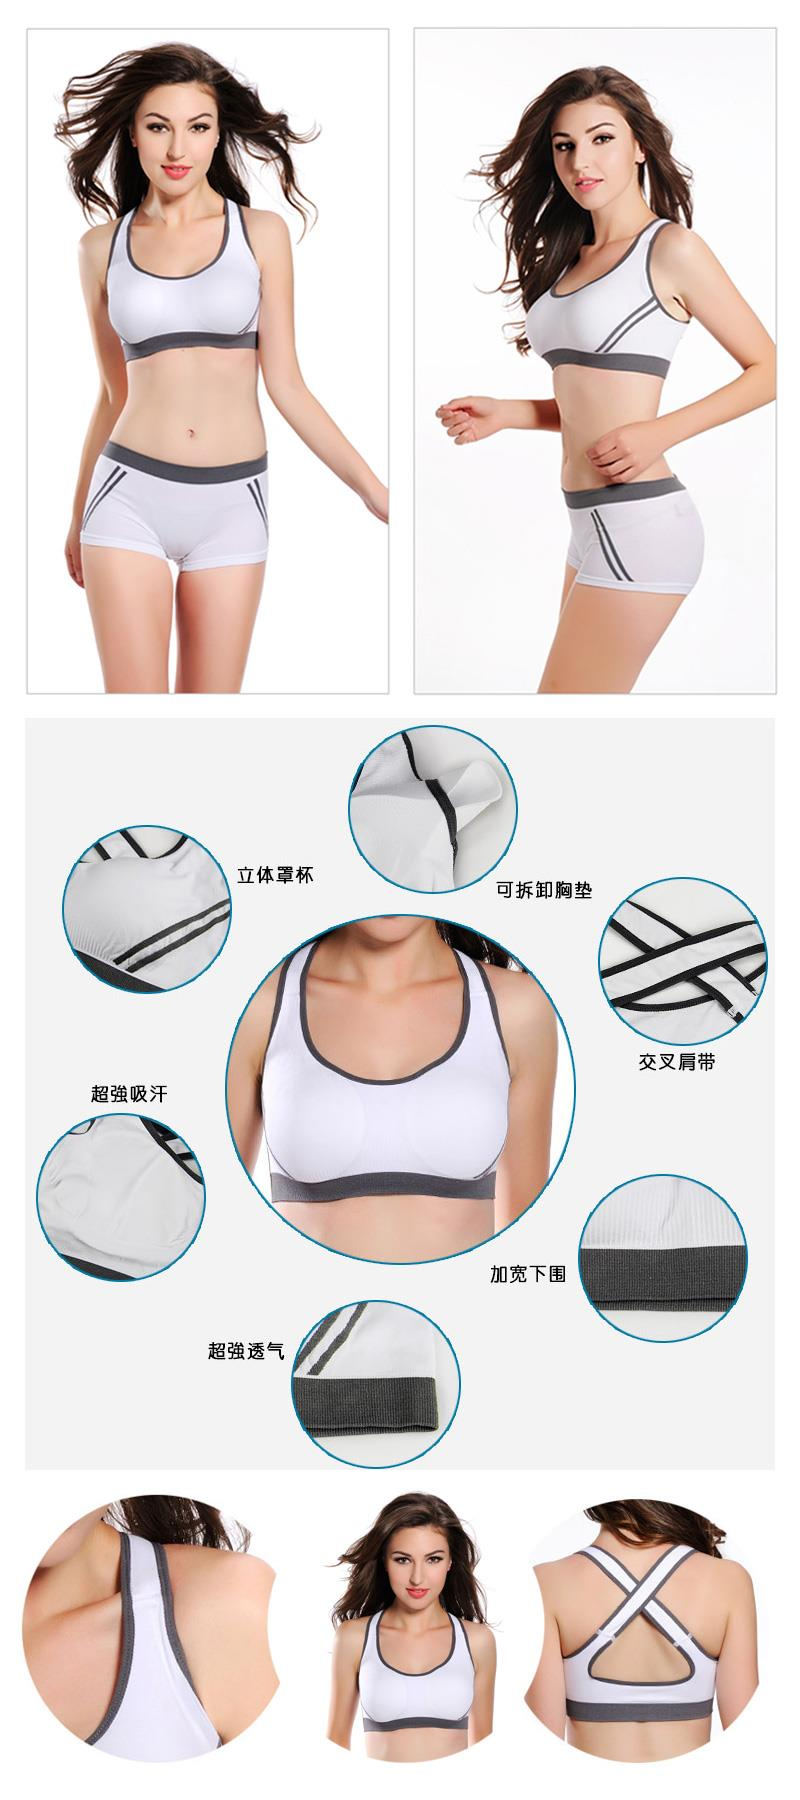 Wireless Jogging Gym Cardio Yoga Seamless Sports Bra + Brief Set